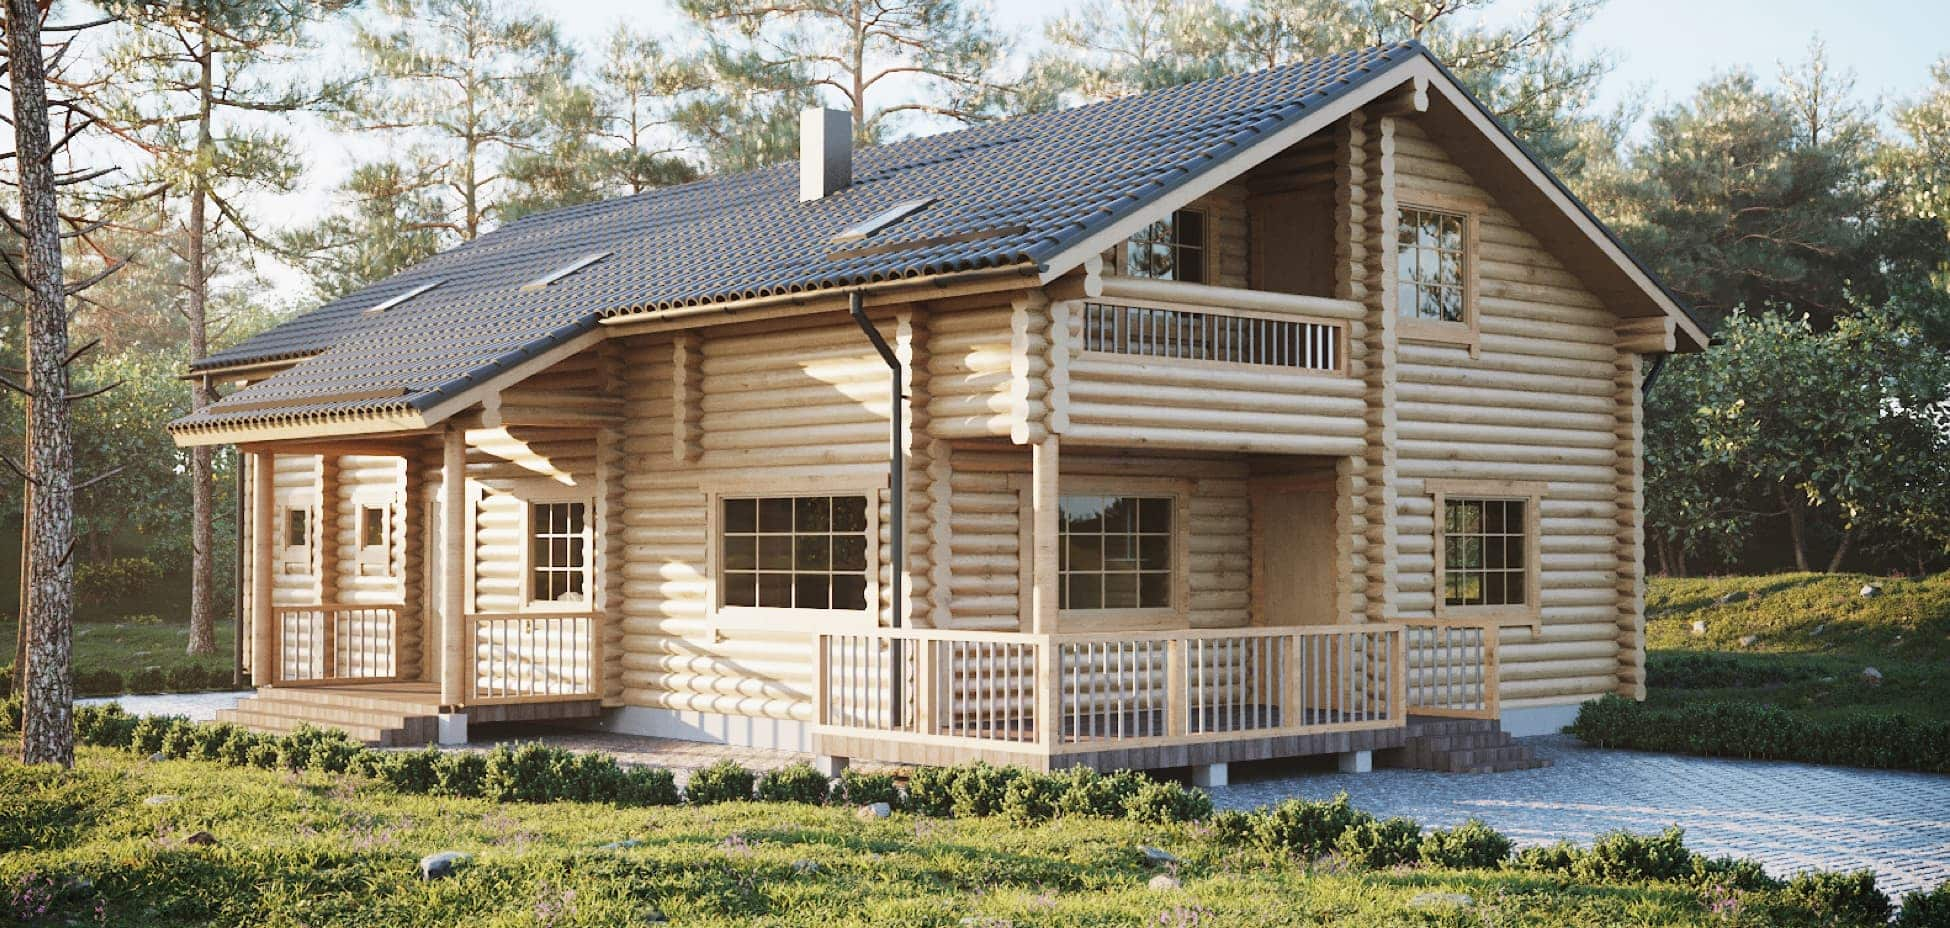 Custom made wooden houses from project to assembly